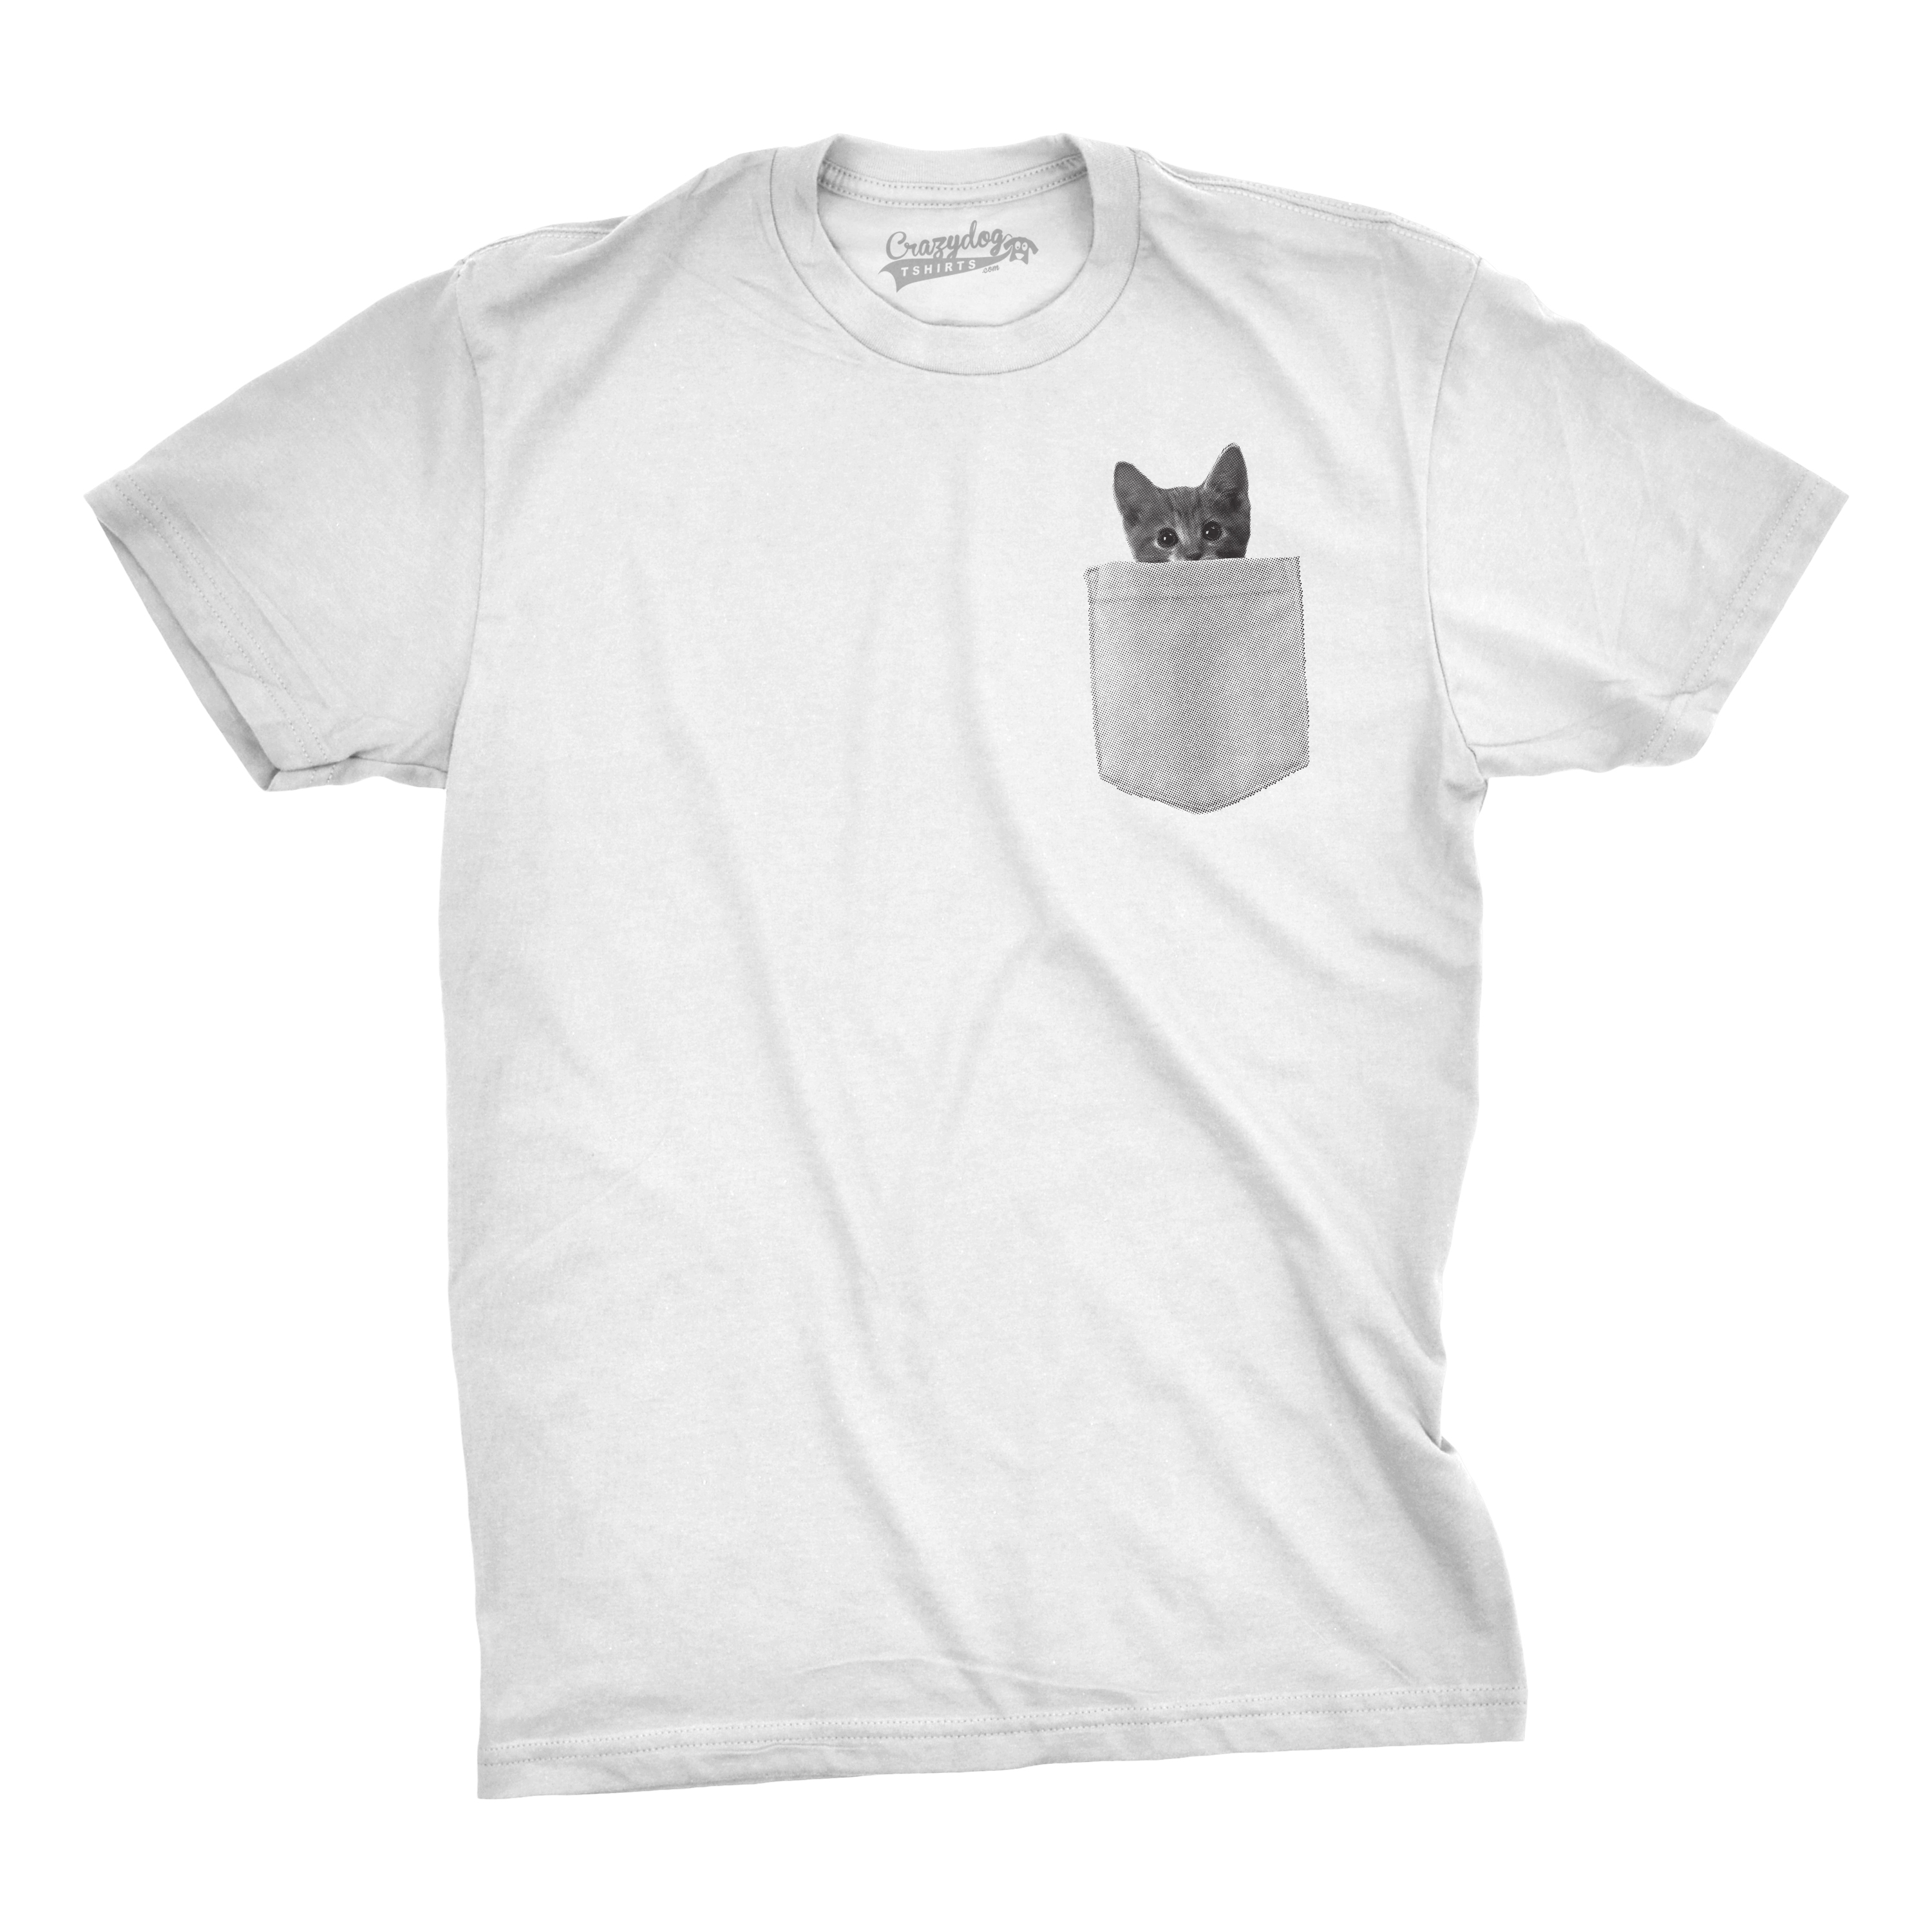 Product Features Four crew-neck T-shirts with tagless collar and short sleeves.